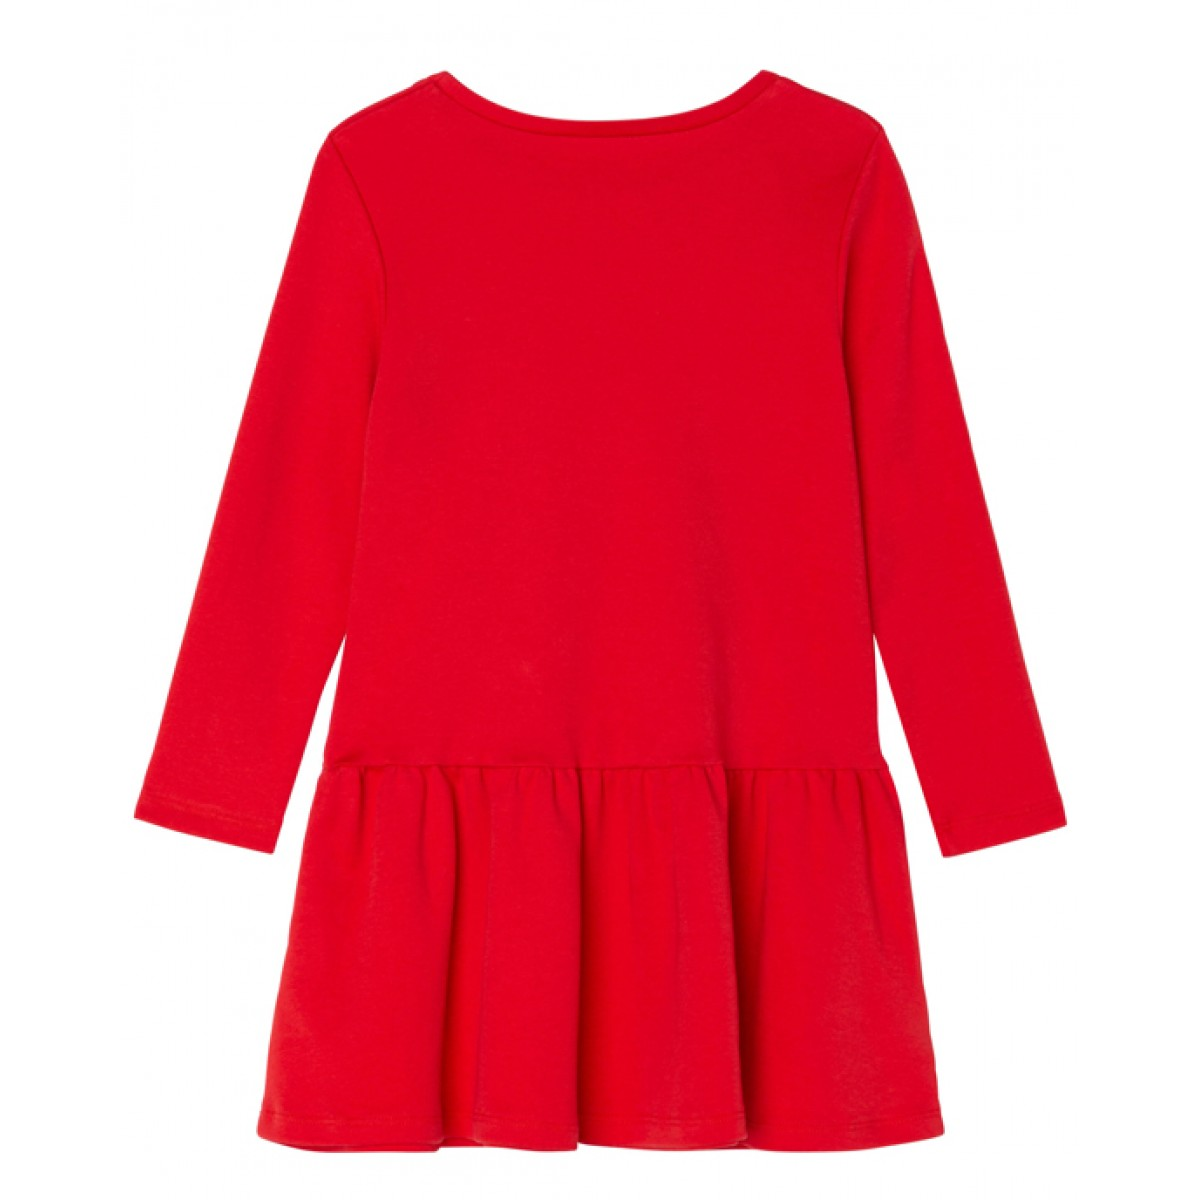 Logo cotton dress in red